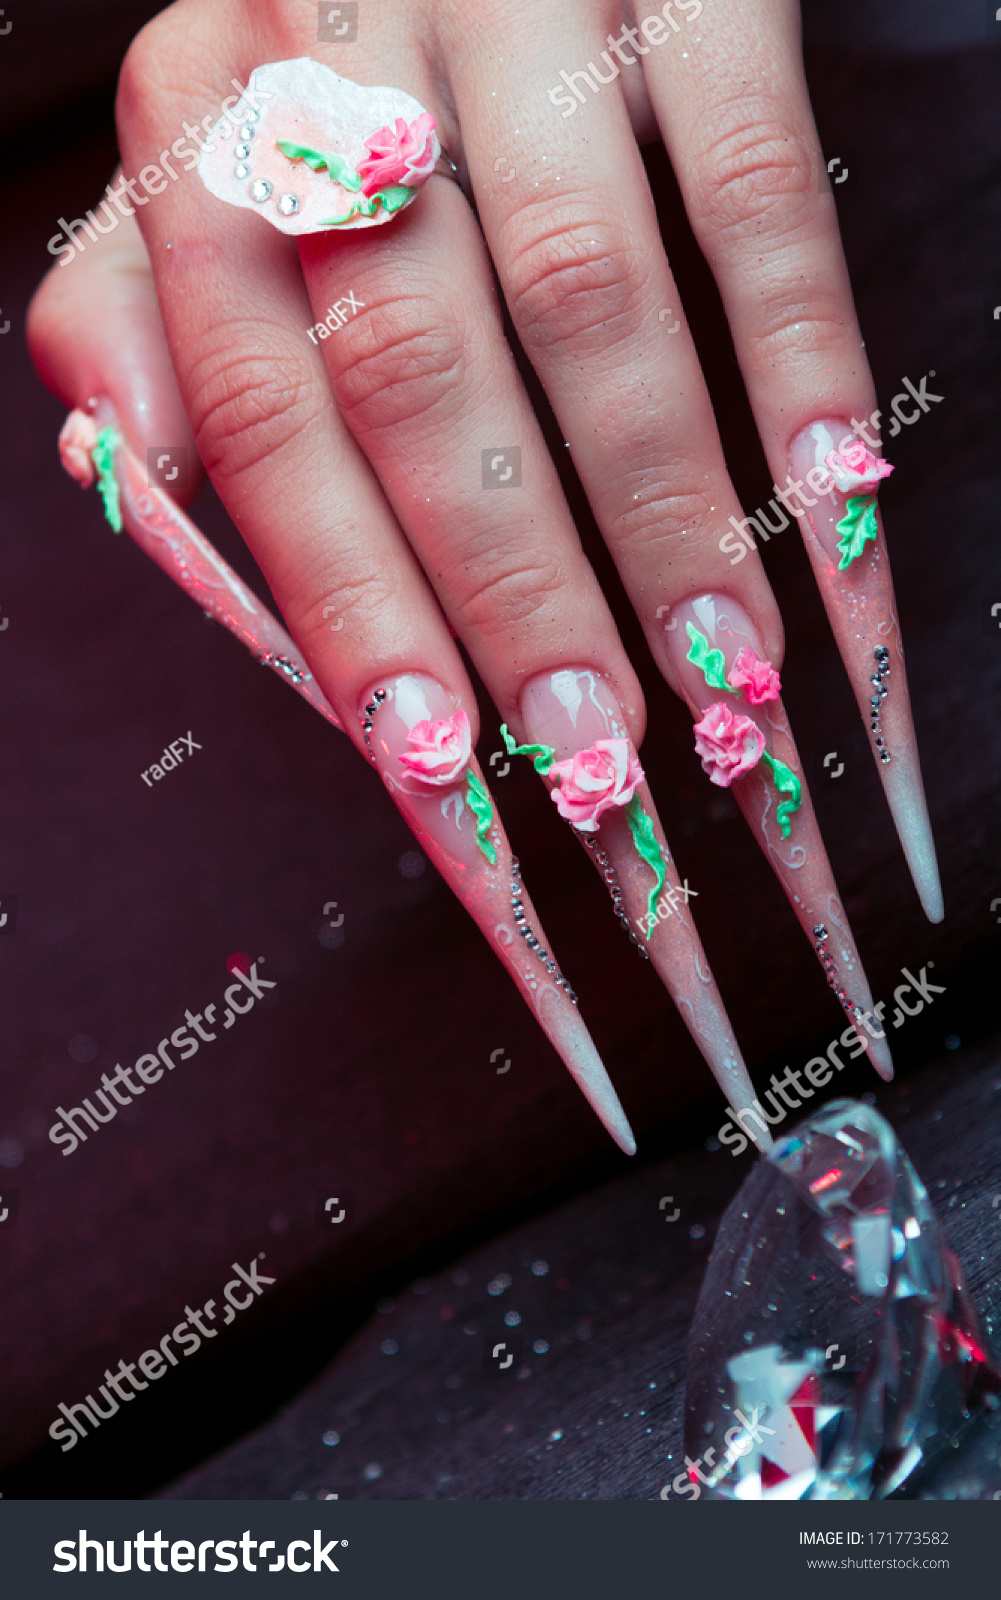 Extreme Nails Hands Diamond Isolated On Stock Photo 171773582 ...